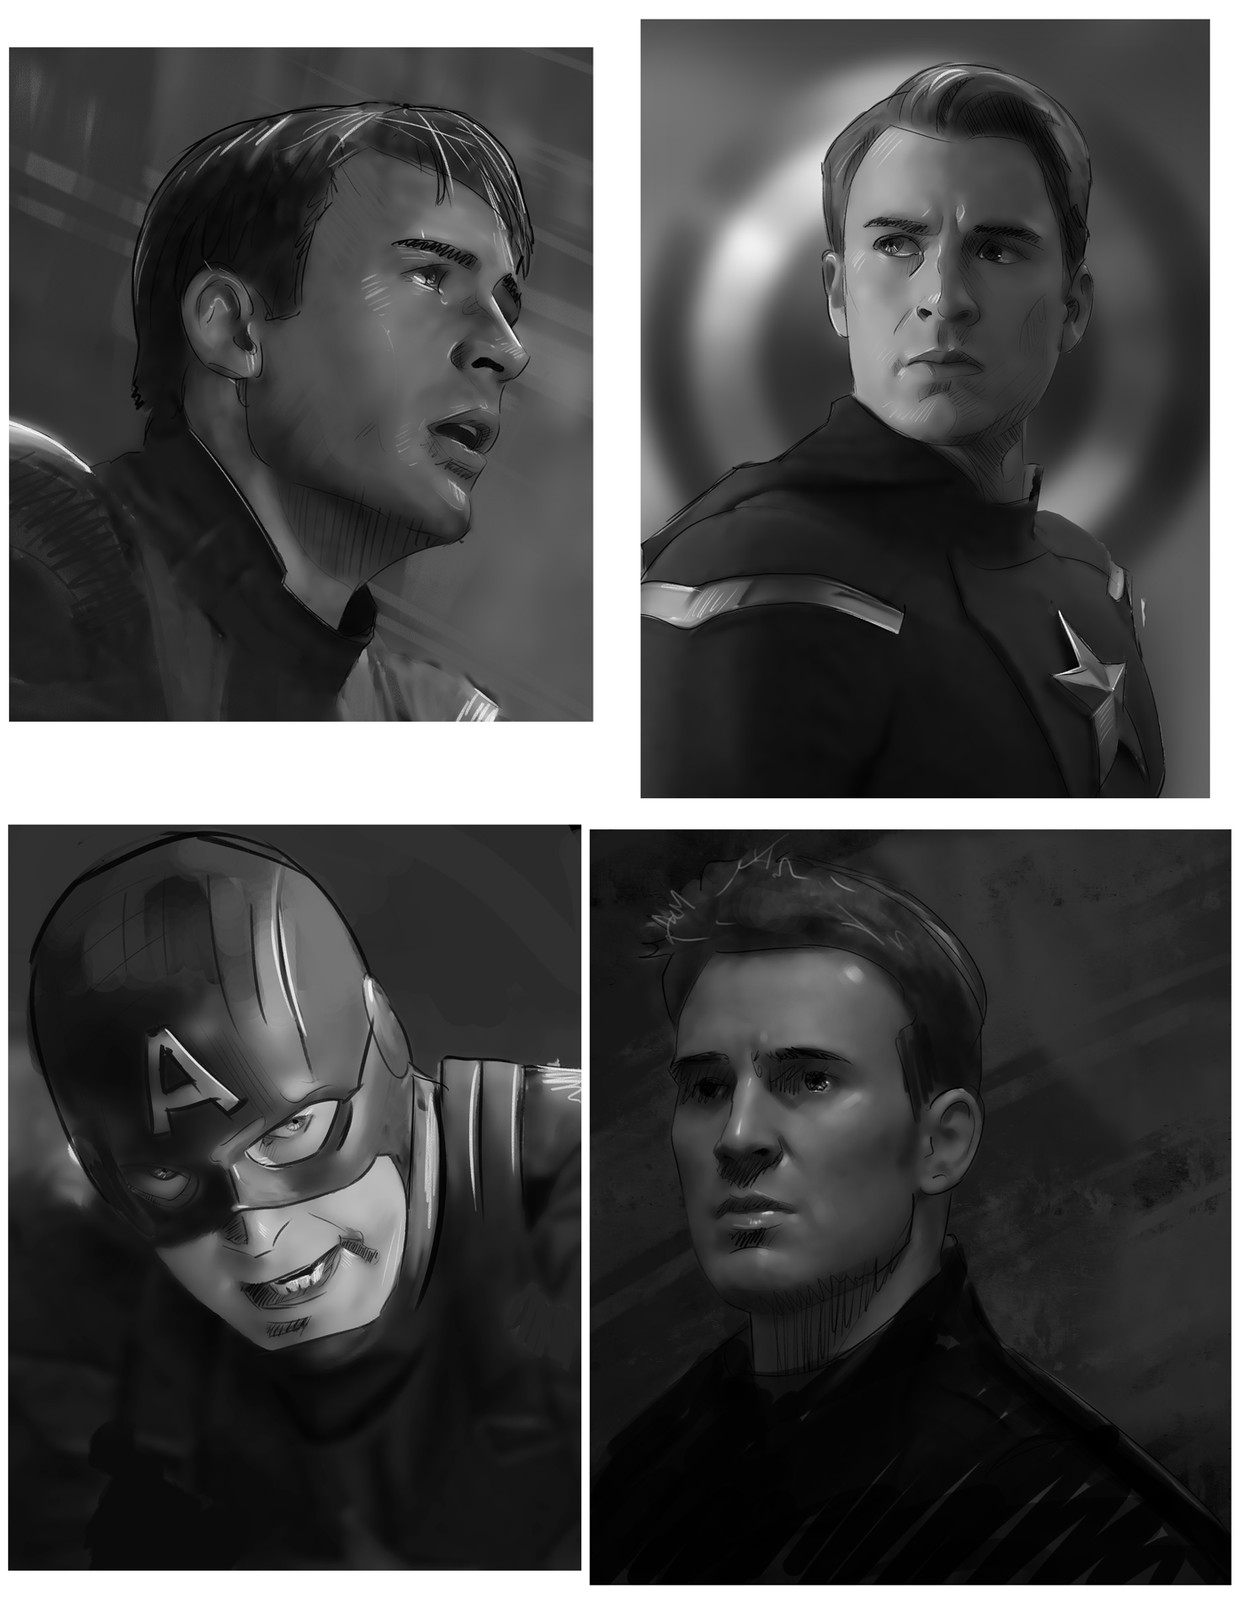 Captain America Sketches